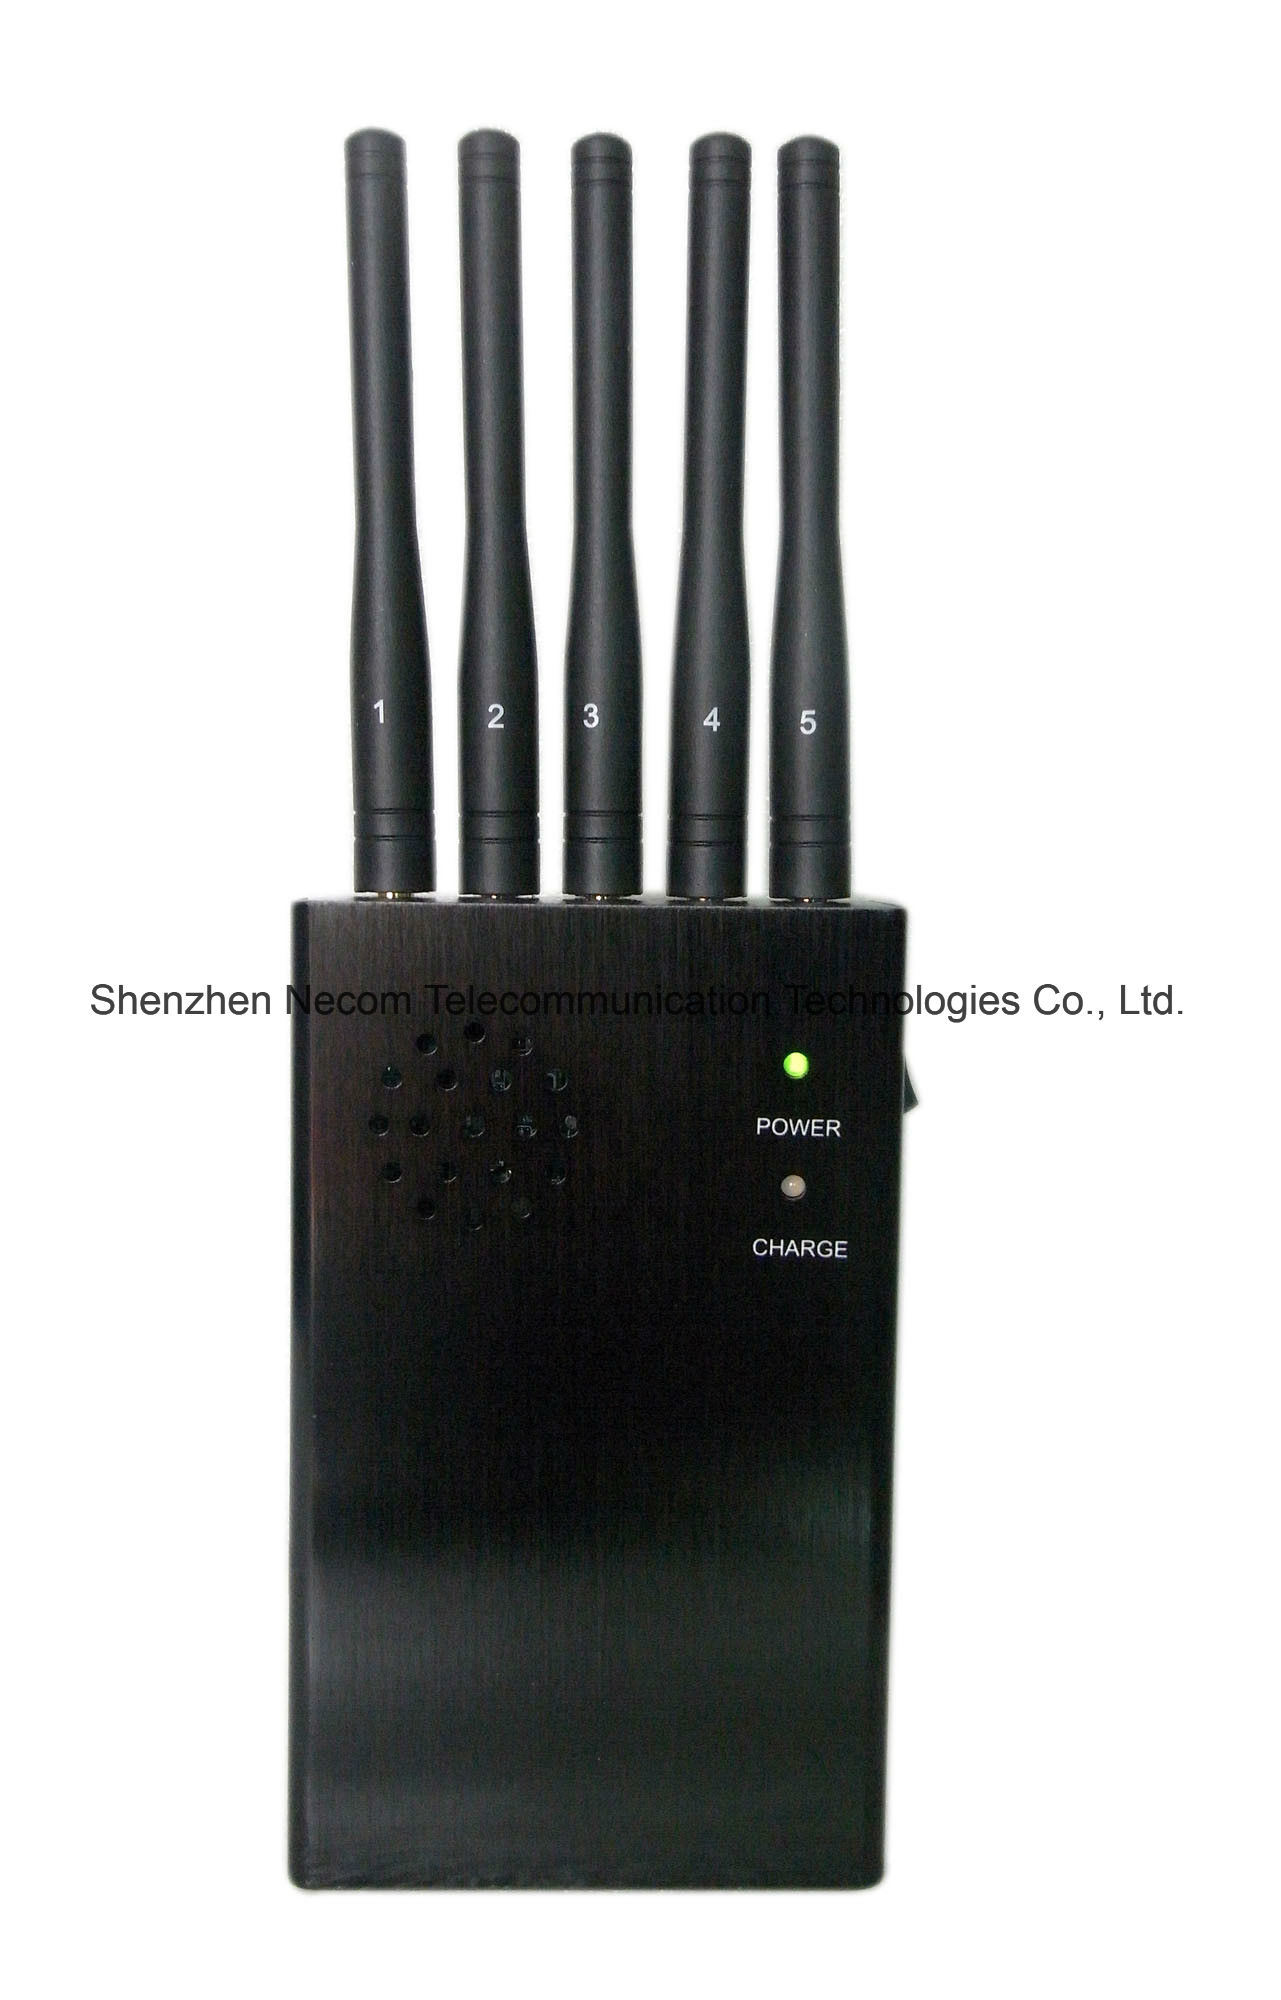 jammerjab kirby morrow jr - China 5 Antenna Handheld Phone Jammer & WiFi Jammer & GPS Jammer, 5bands Handheld Jammer for Cellphone, Wi-Fi, 433, 315 Remote Control Jammer - China 5 Band Signal Blockers, Five Antennas Jammers